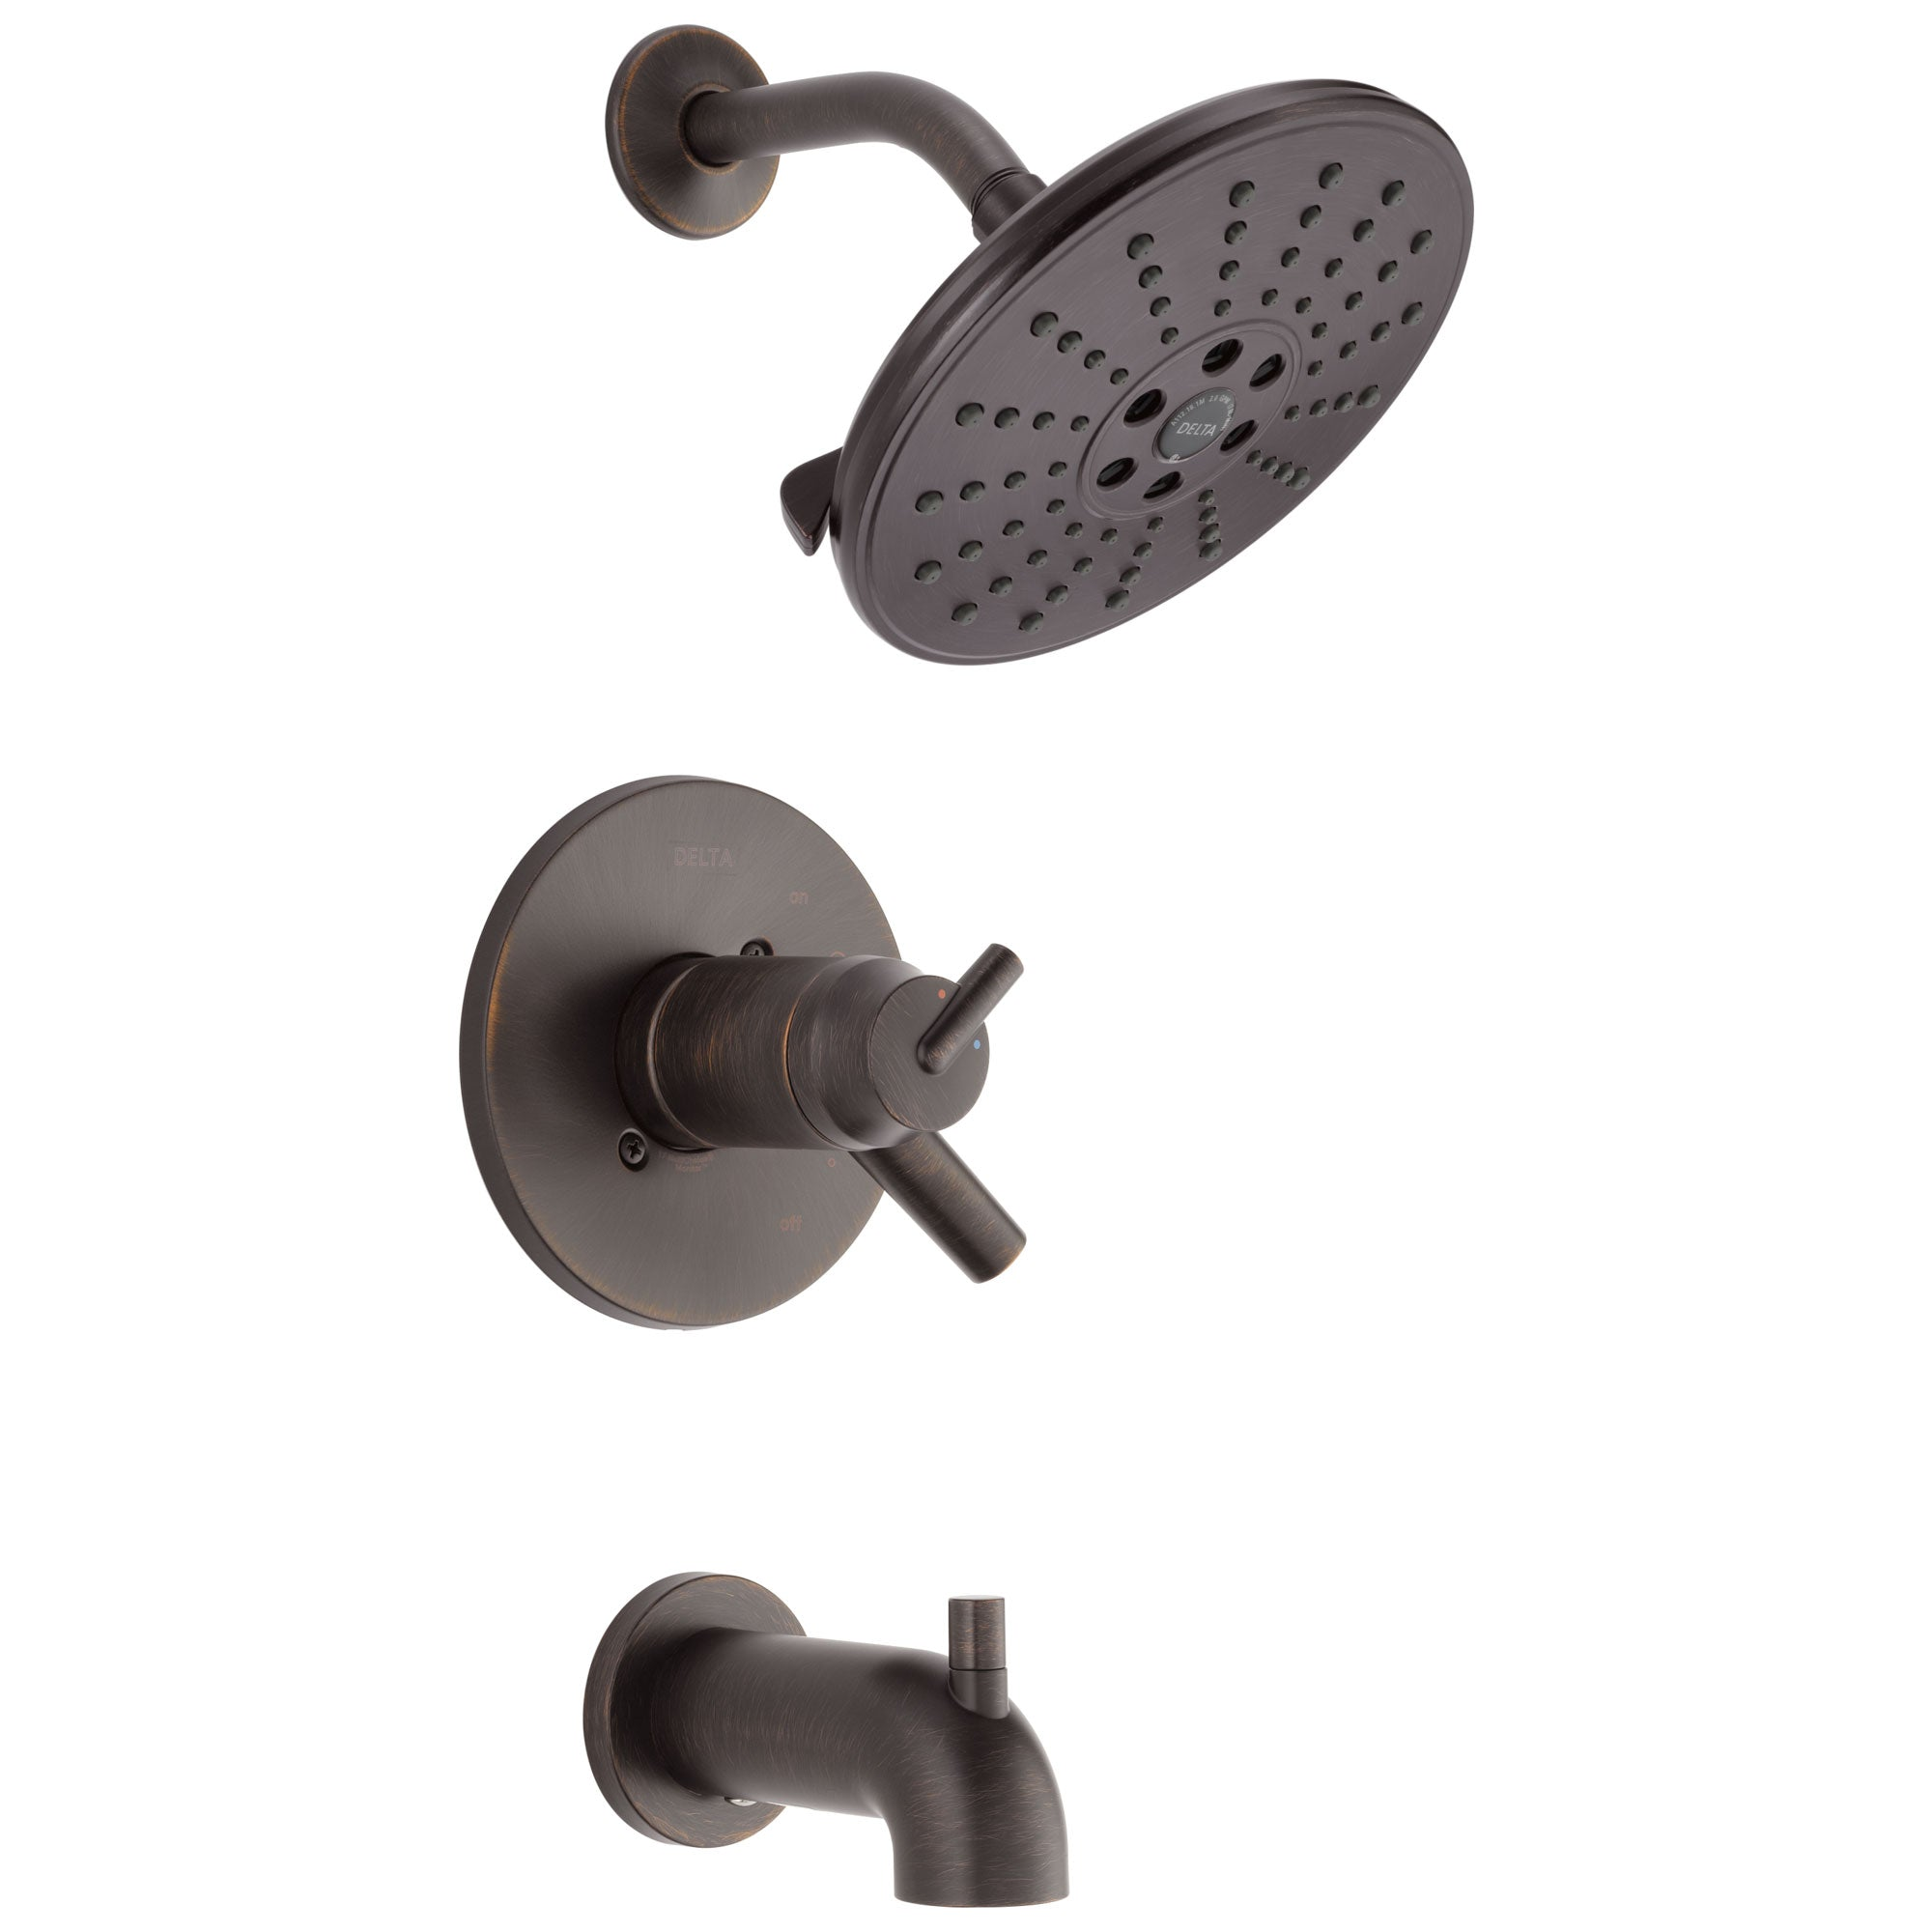 Delta Trinsic Collection Venetian Bronze TempAssure 17T Series Watersense Thermostatic Tub and Shower Combo Faucet Includes Valve without Stops D2231V